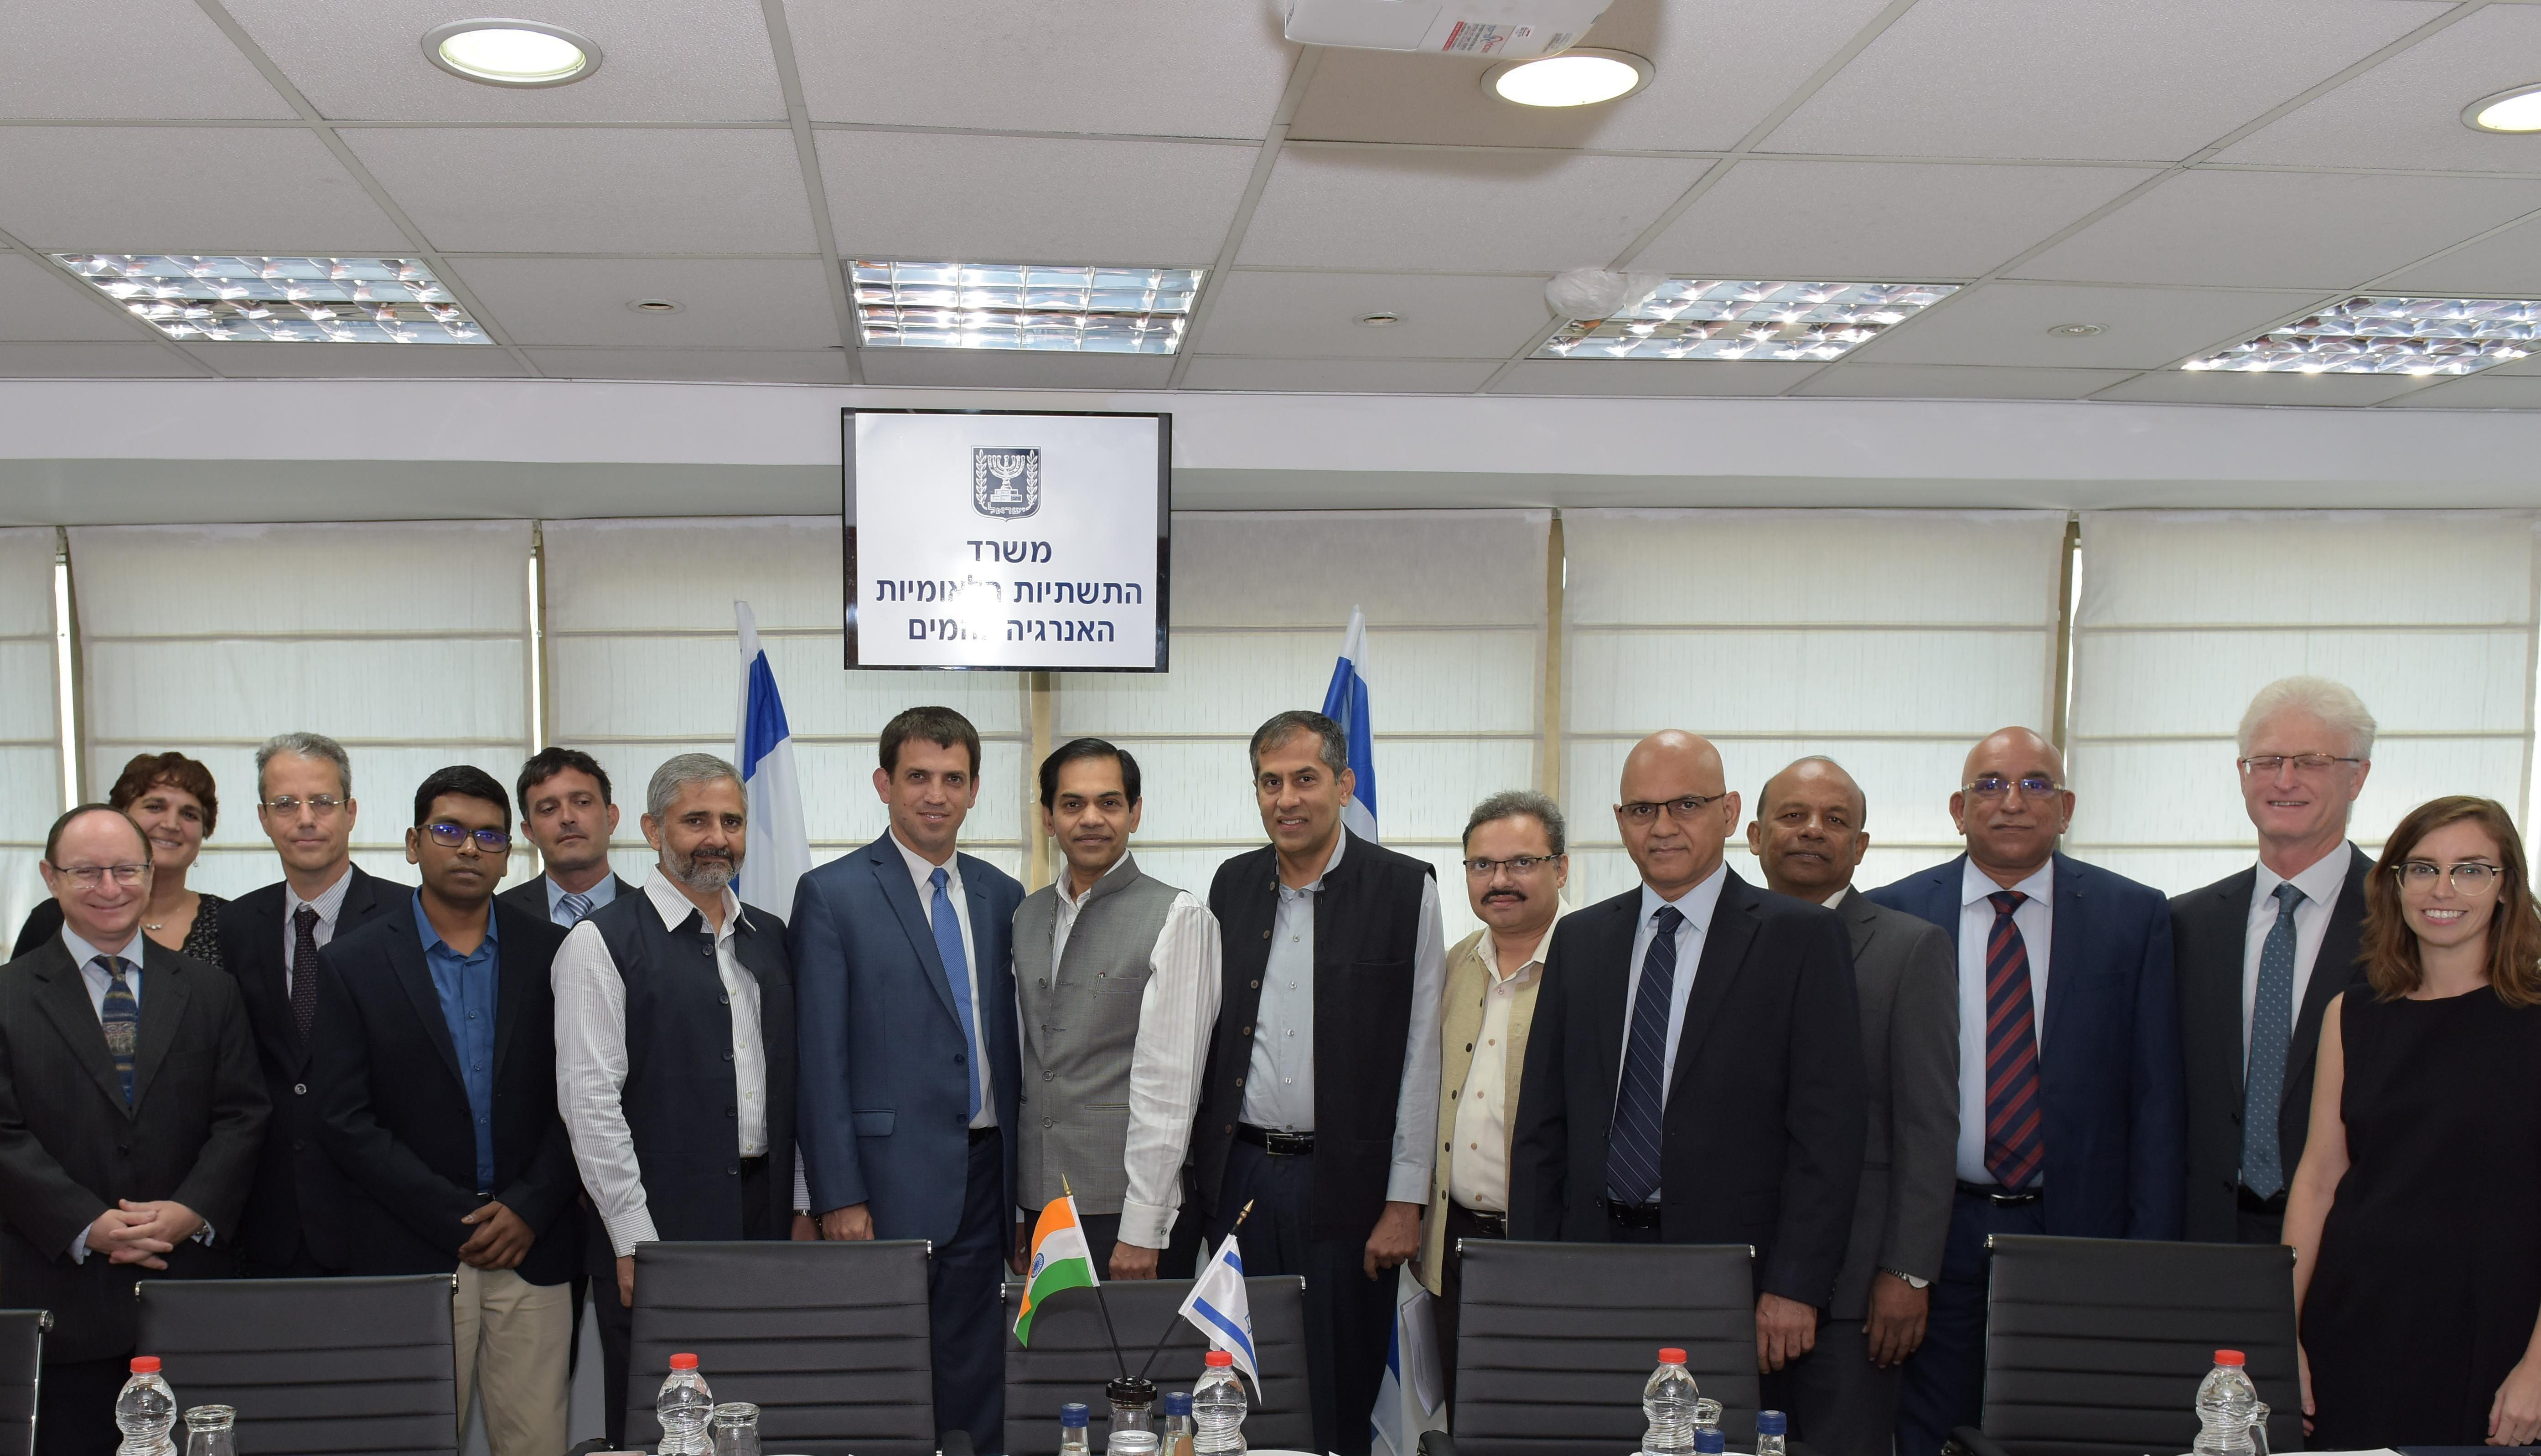 The economic cooperation between Israel and India extends to the energy sector